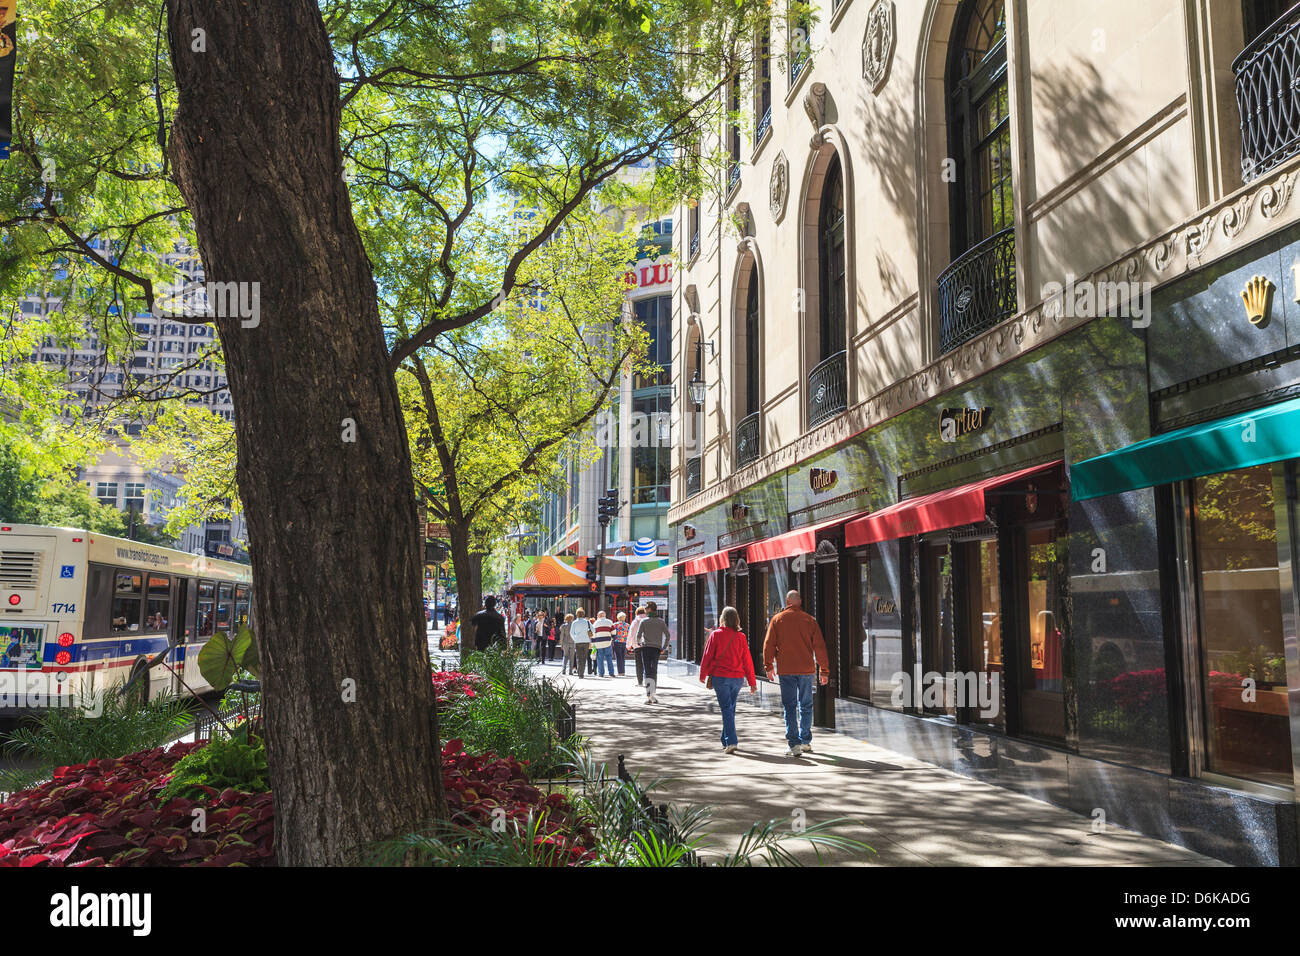 Le Magnificent Mile, North Michigan Avenue, Chicago, Chicago, Illinois Photo Stock